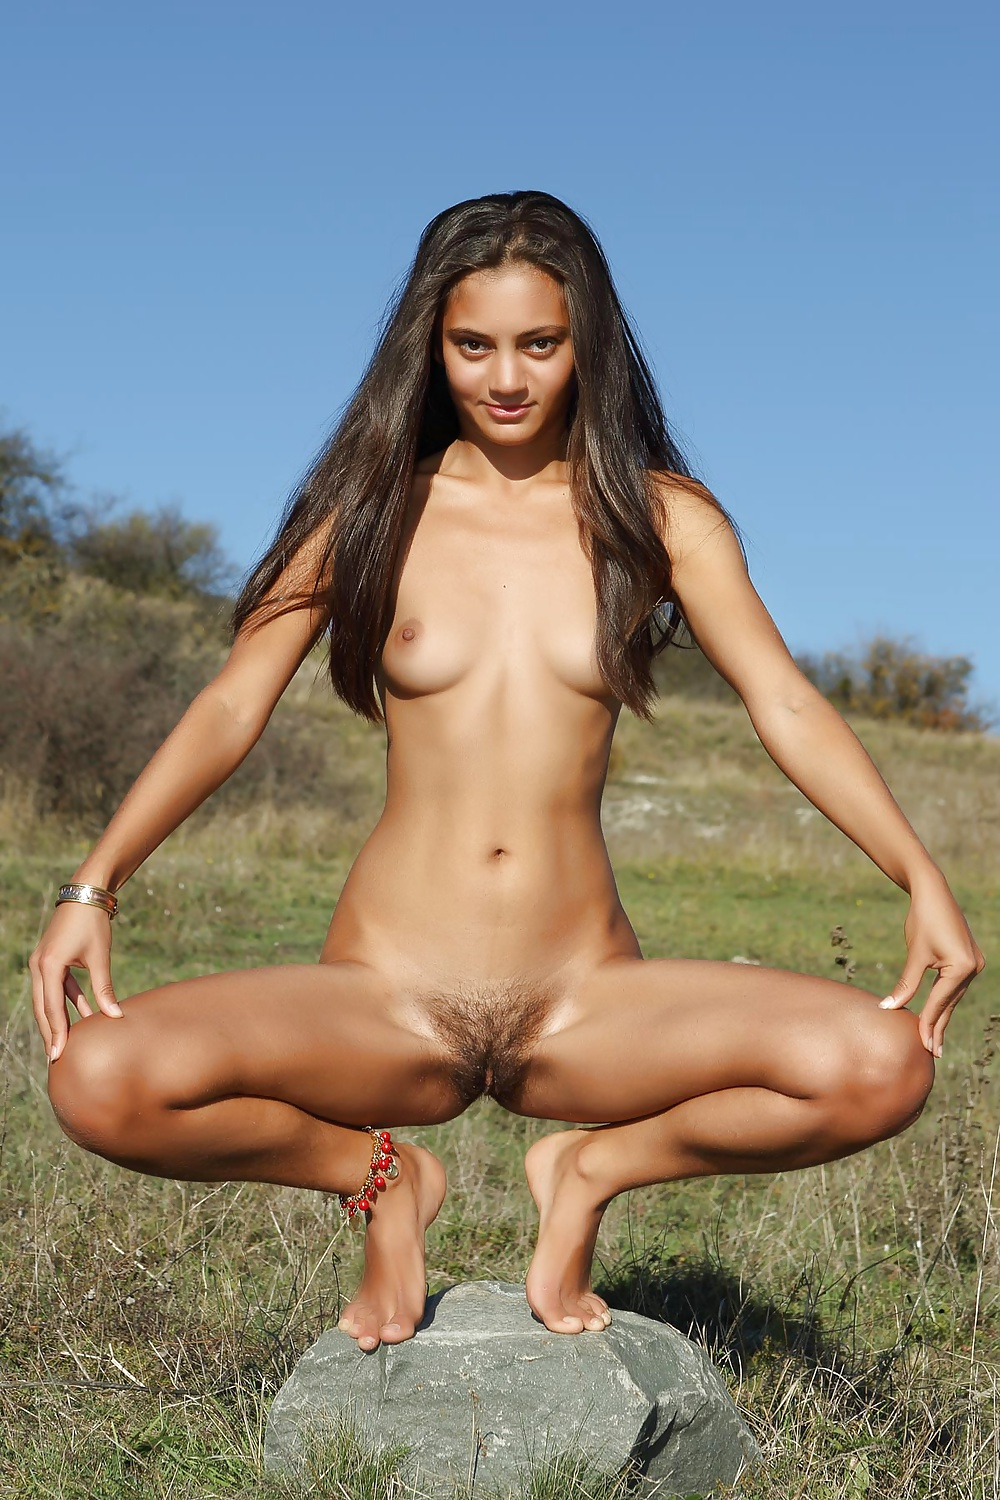 gypsy-young-girl-nude-uk-matureladies-naked